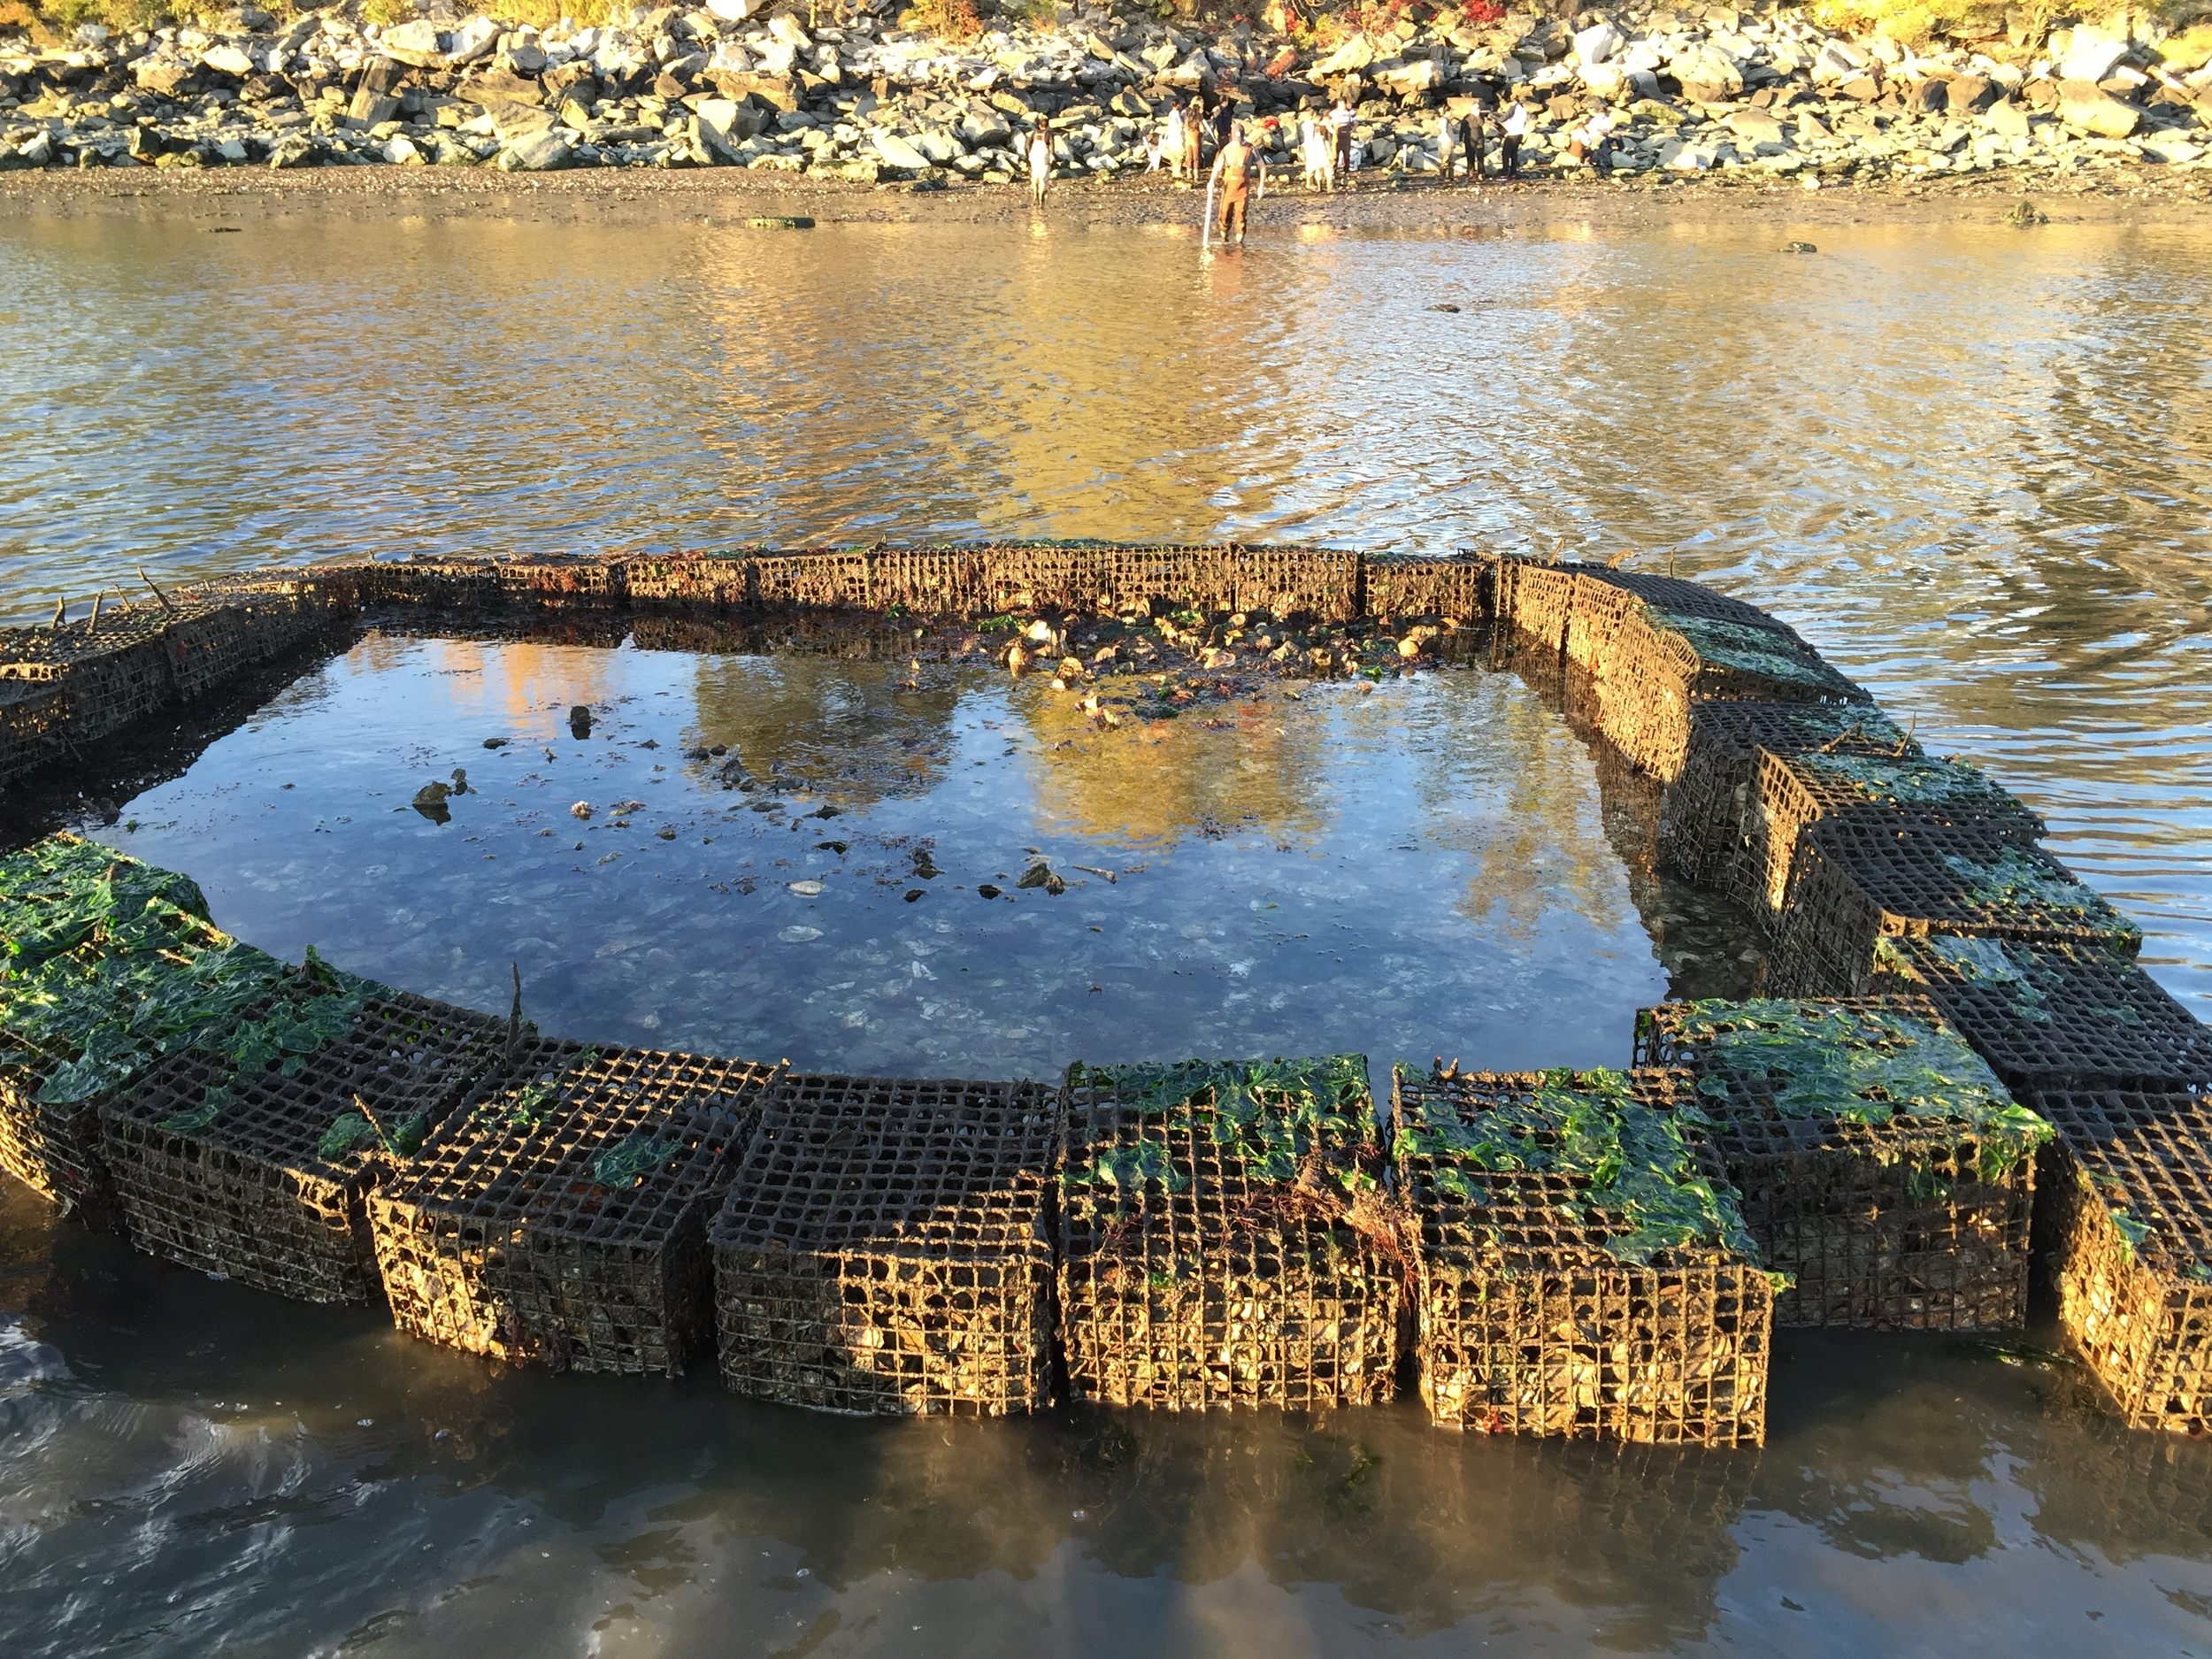 A Gabion at Low Tide: You Can See the Square Structure, Photo Credit: Liz Summit, 2015